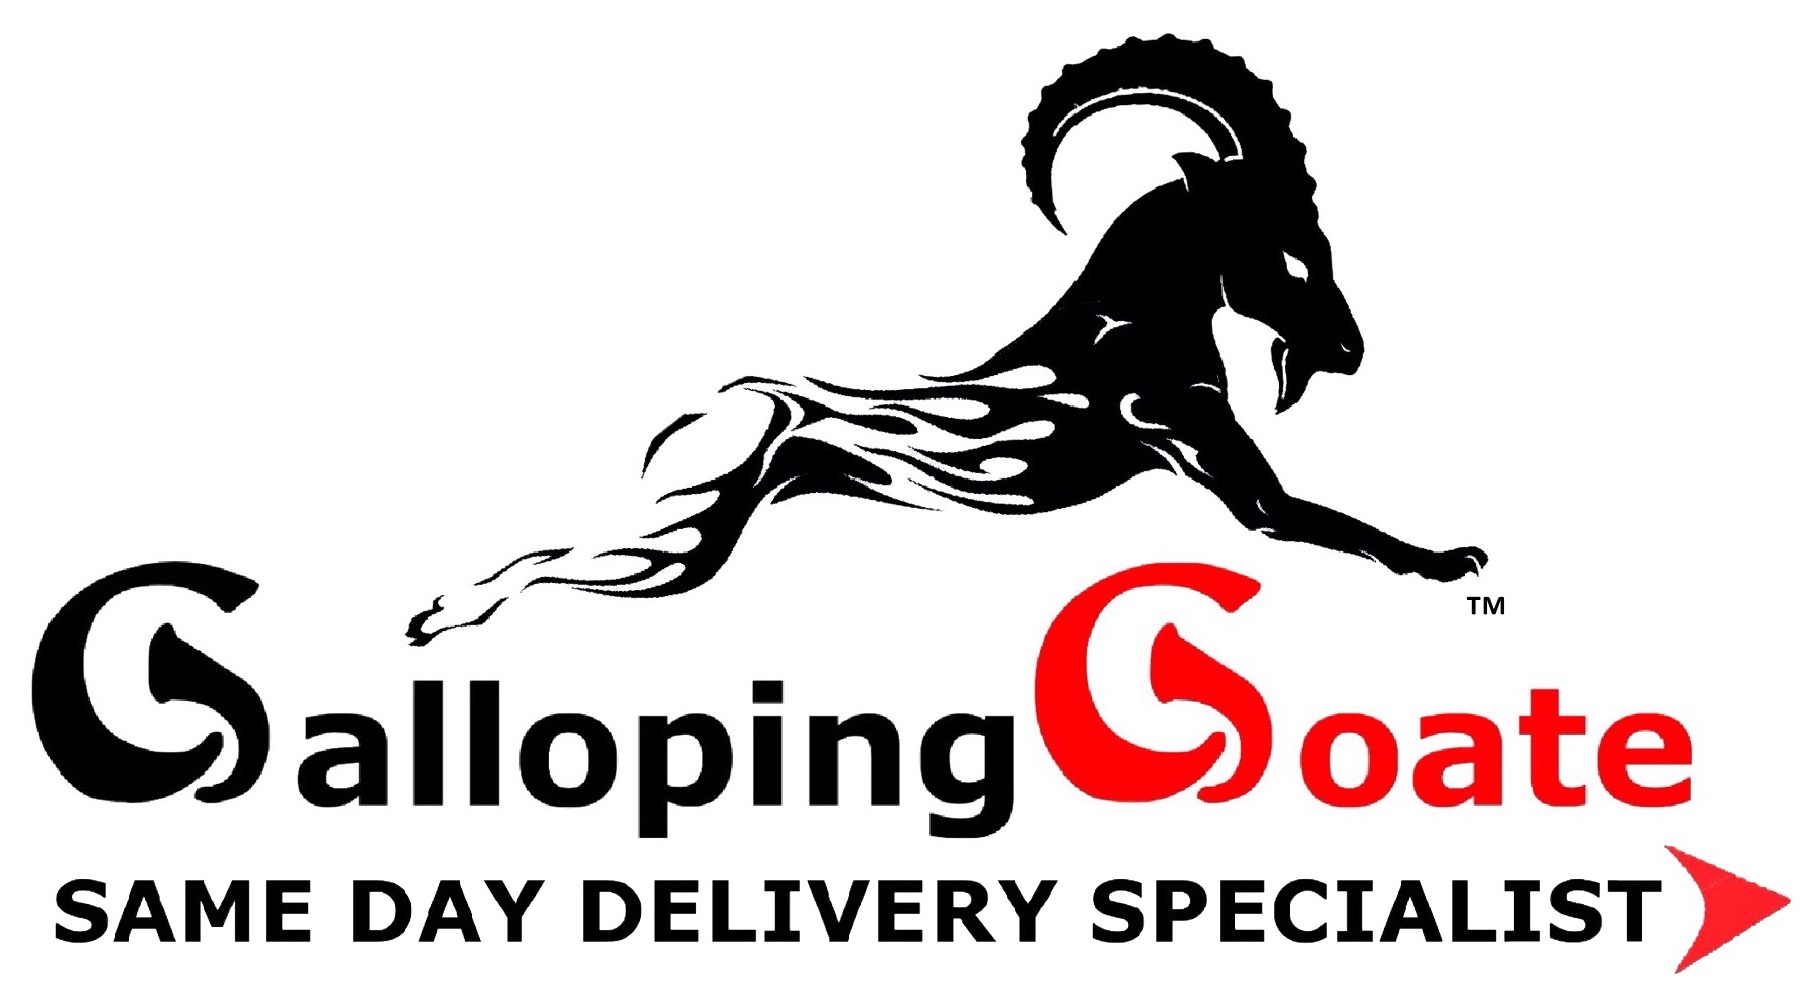 Galloping Goate Delivery Service